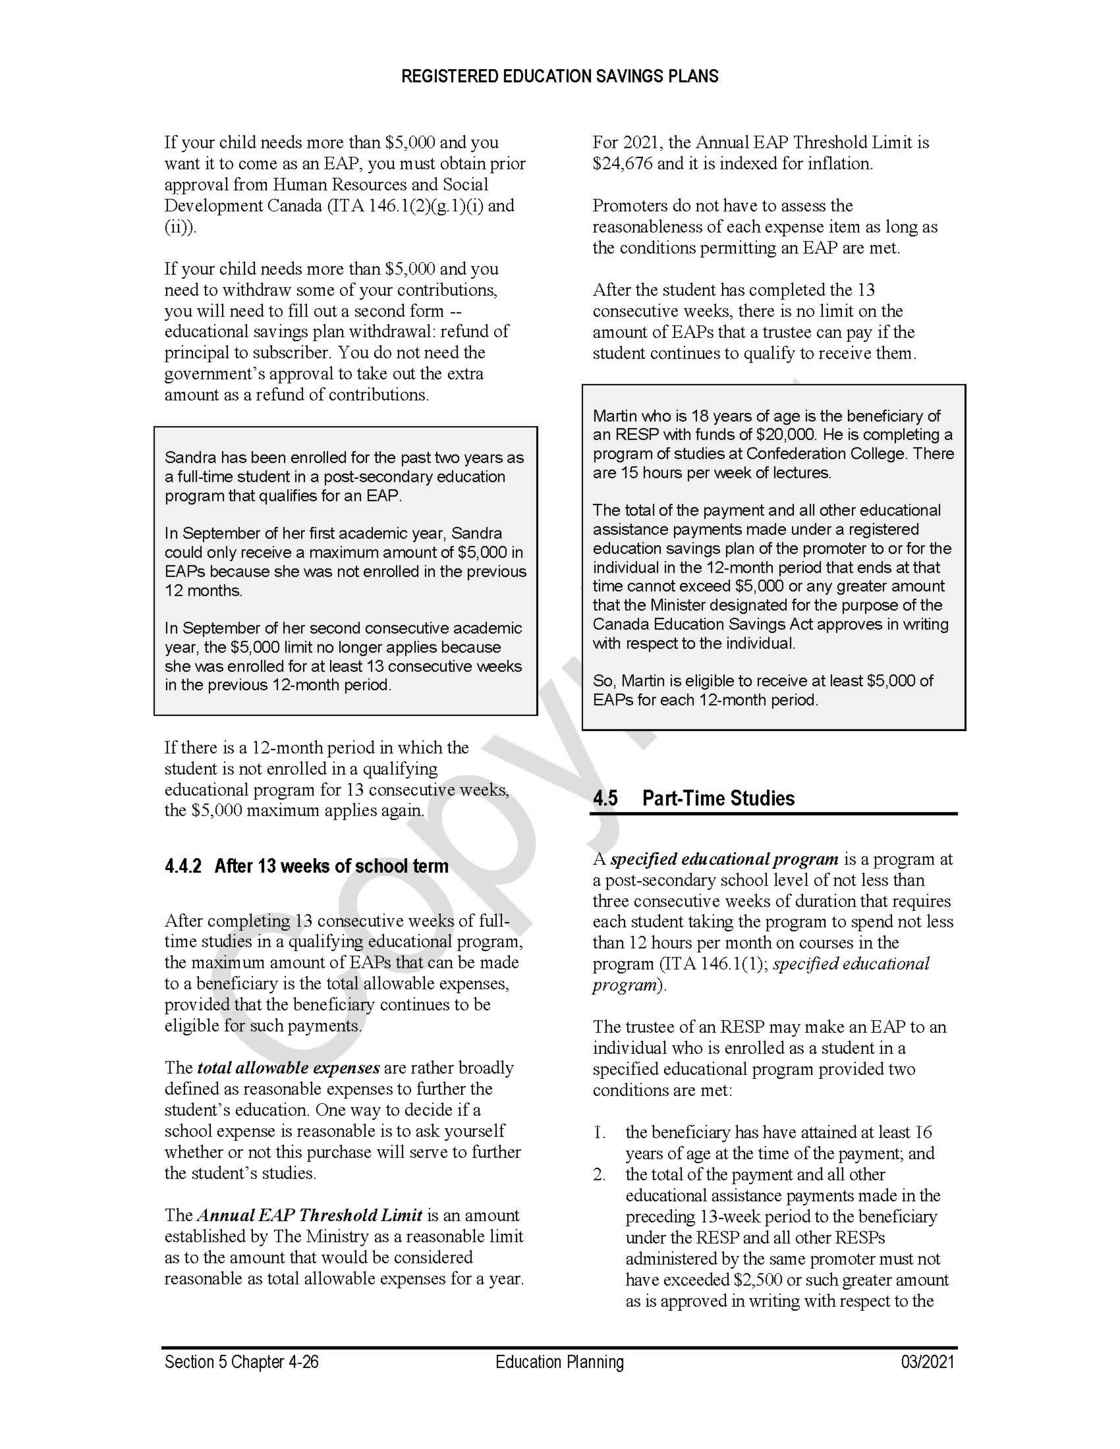 PFP 5-04 RESPs 104 Page_26